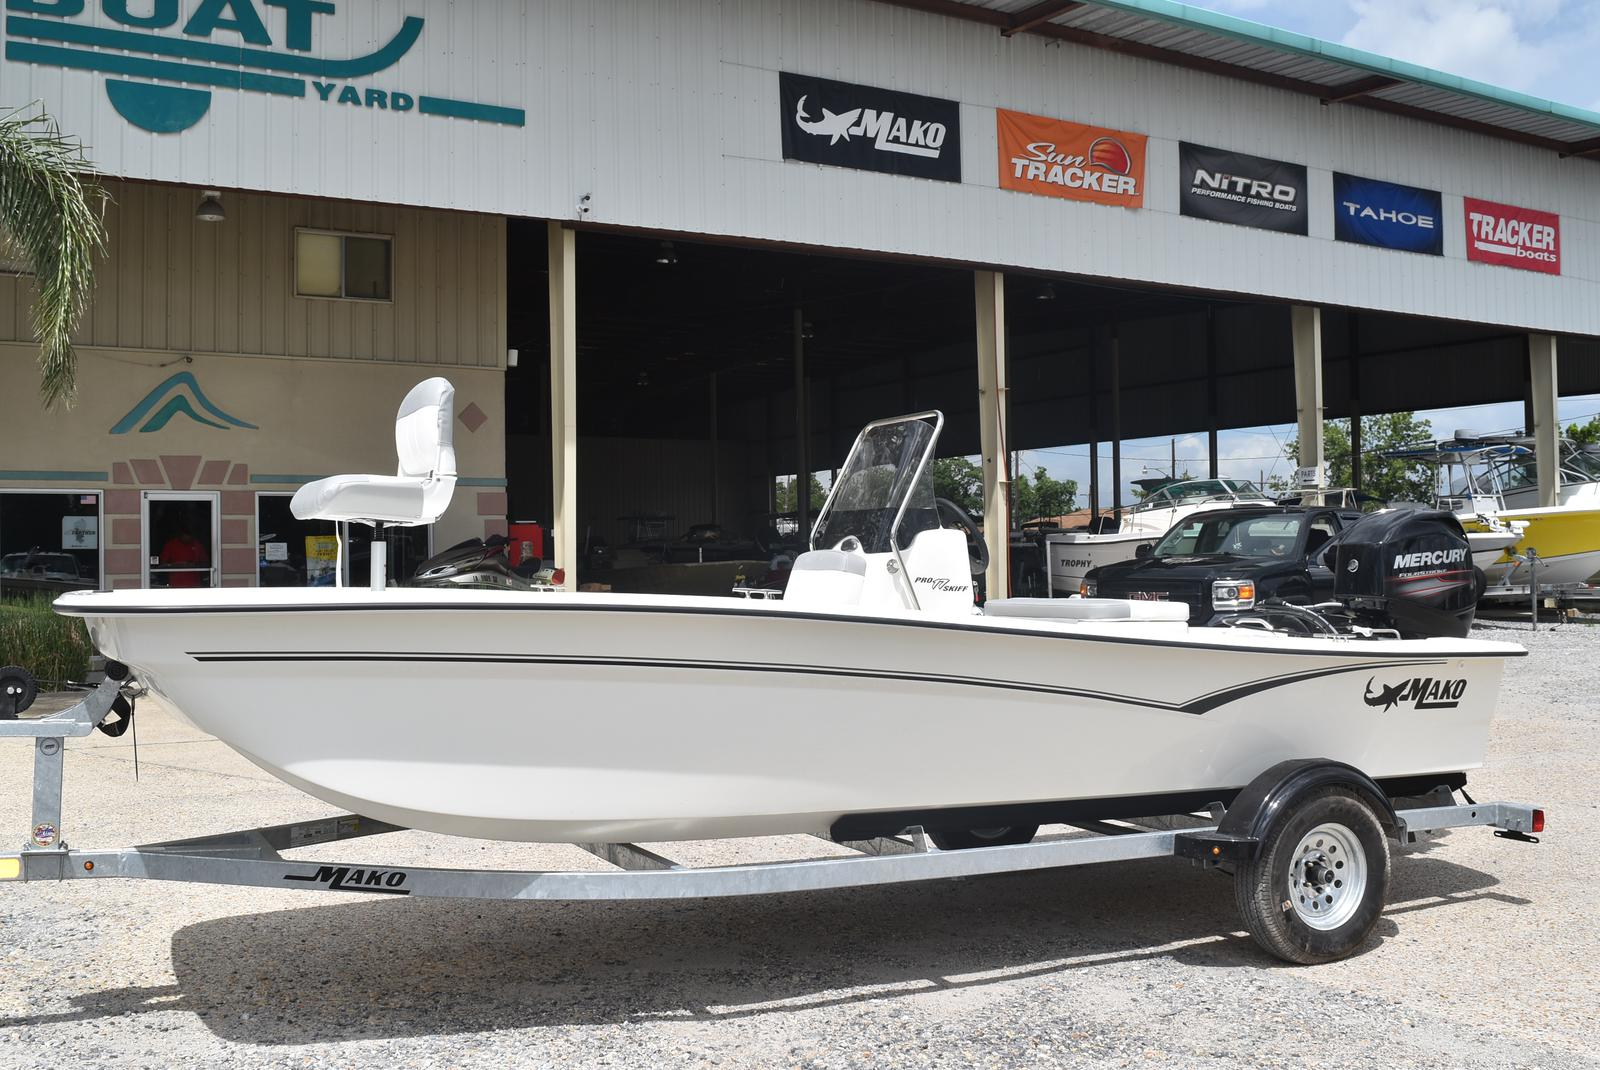 2020 Mako boat for sale, model of the boat is Pro Skiff 17, 75 ELPT & Image # 94 of 702